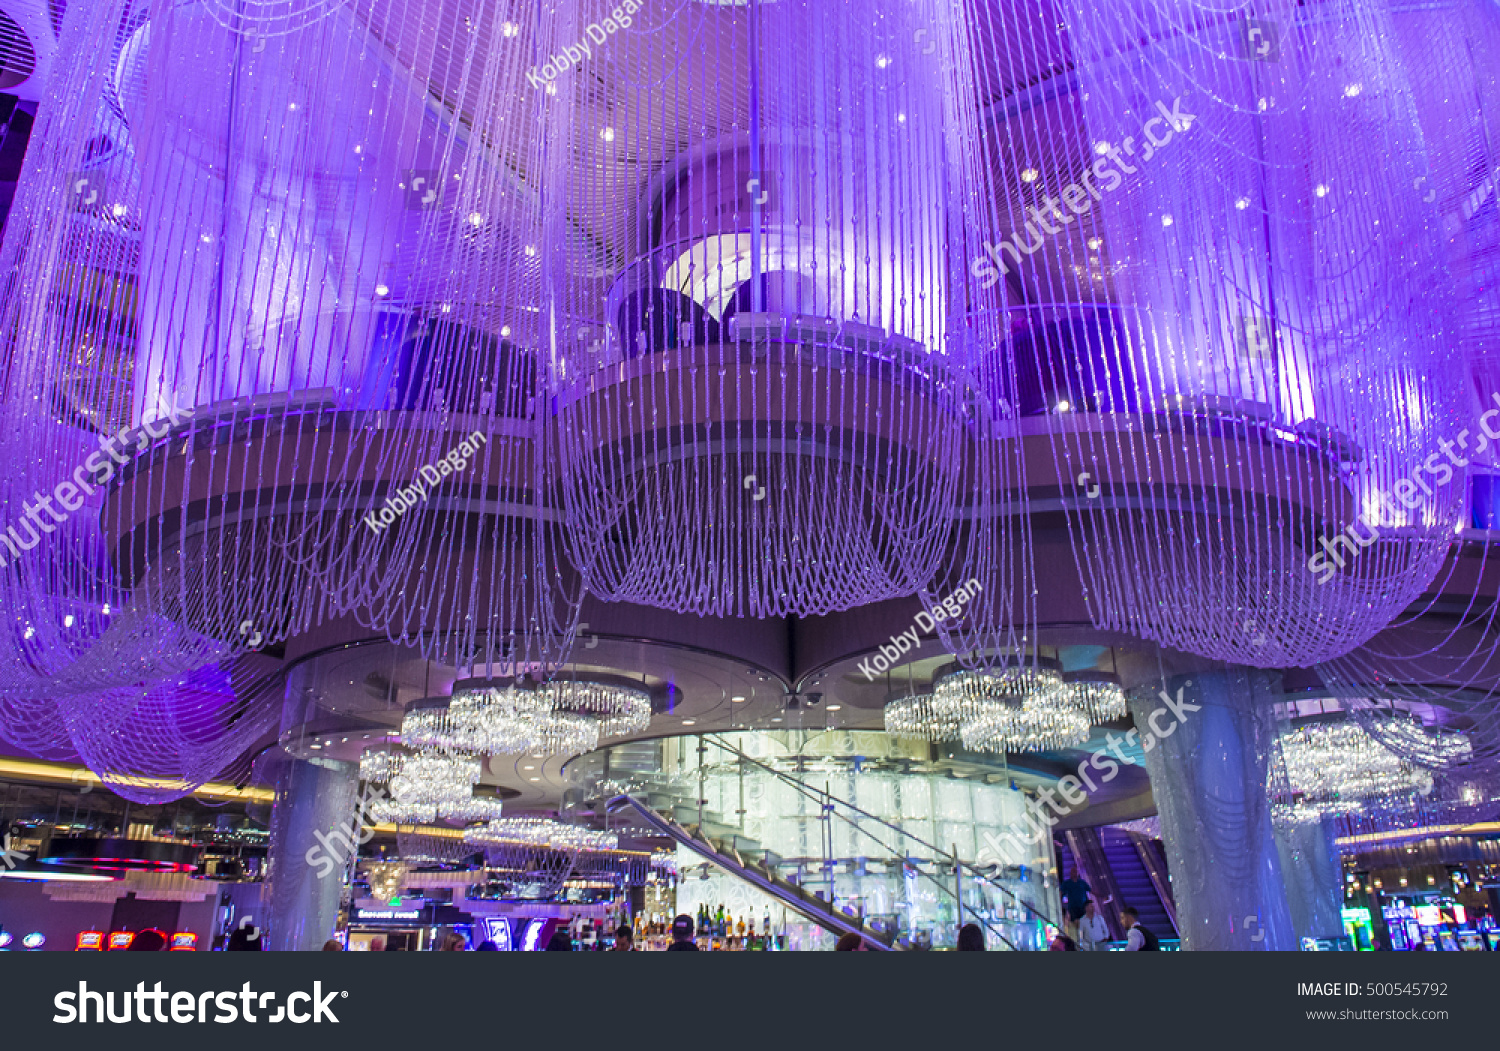 Las vegas oct 05 chandelier bar stock photo edit now shutterstock las vegas oct 05 the chandelier bar at the cosmopolitan hotel casino in aloadofball